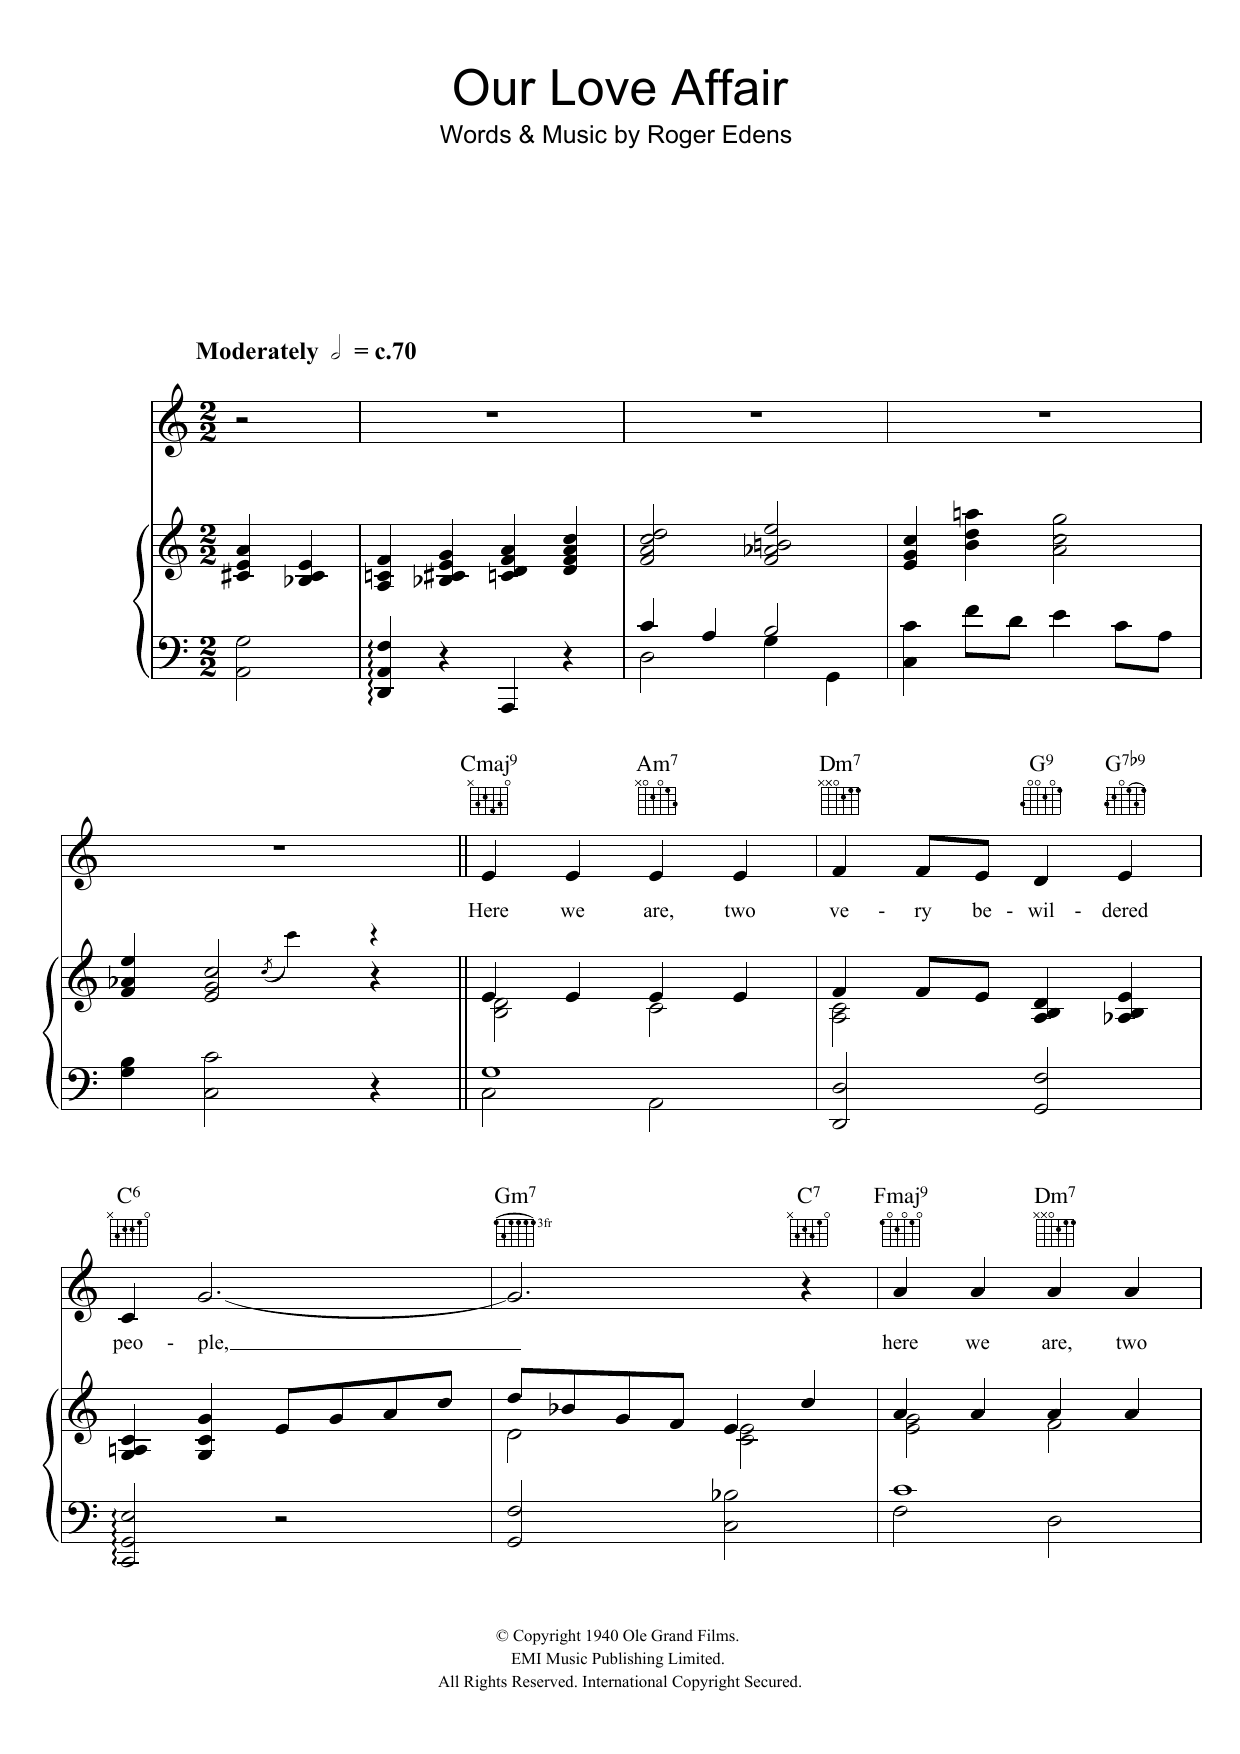 Our Love Affair Sheet Music